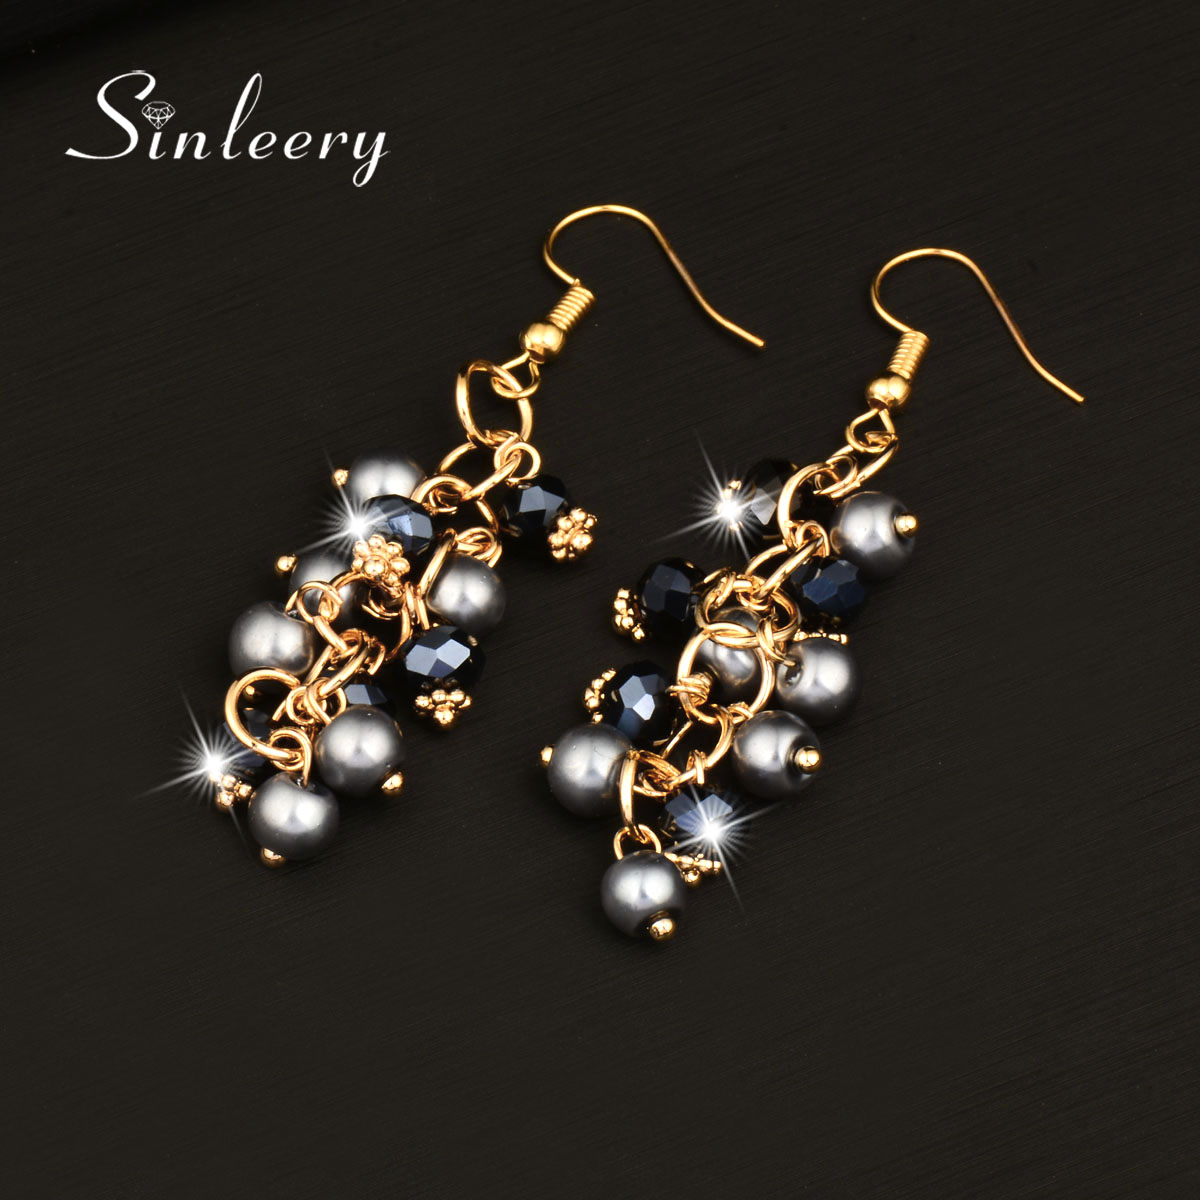 Sinleery 2017 Women Simulated Gray Pearl And Blue Crystal Dangle Earrings  Gold Color Party Earrings For